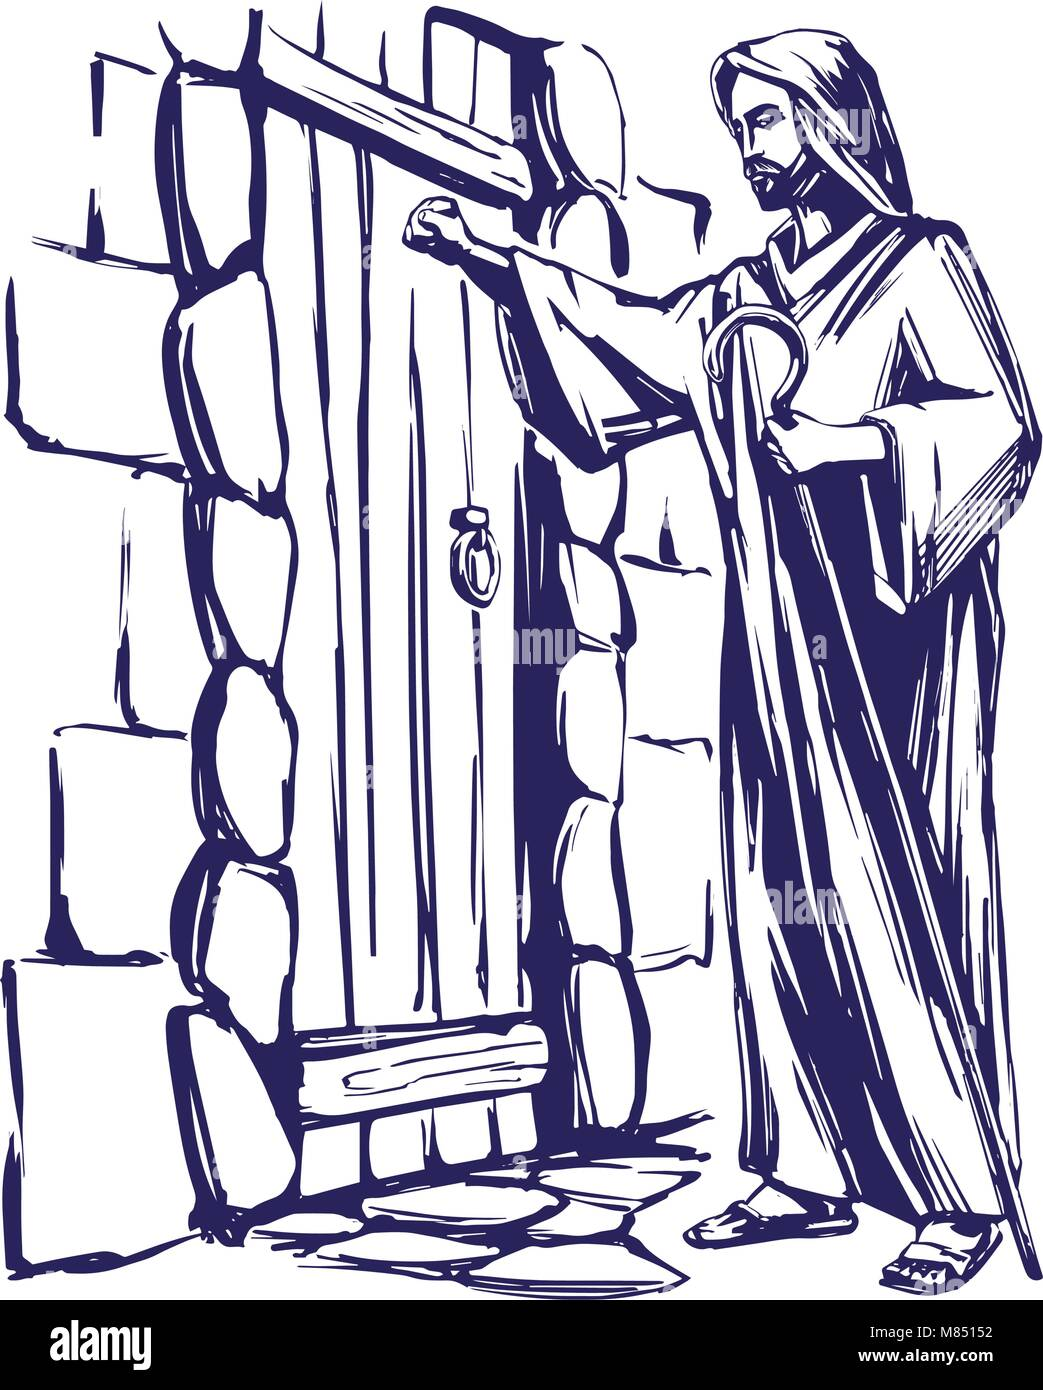 Hand drawn illustration drawing jesus stock photos hand drawn jesus christ son of god knocking at the door symbol of christianity hand drawn altavistaventures Gallery